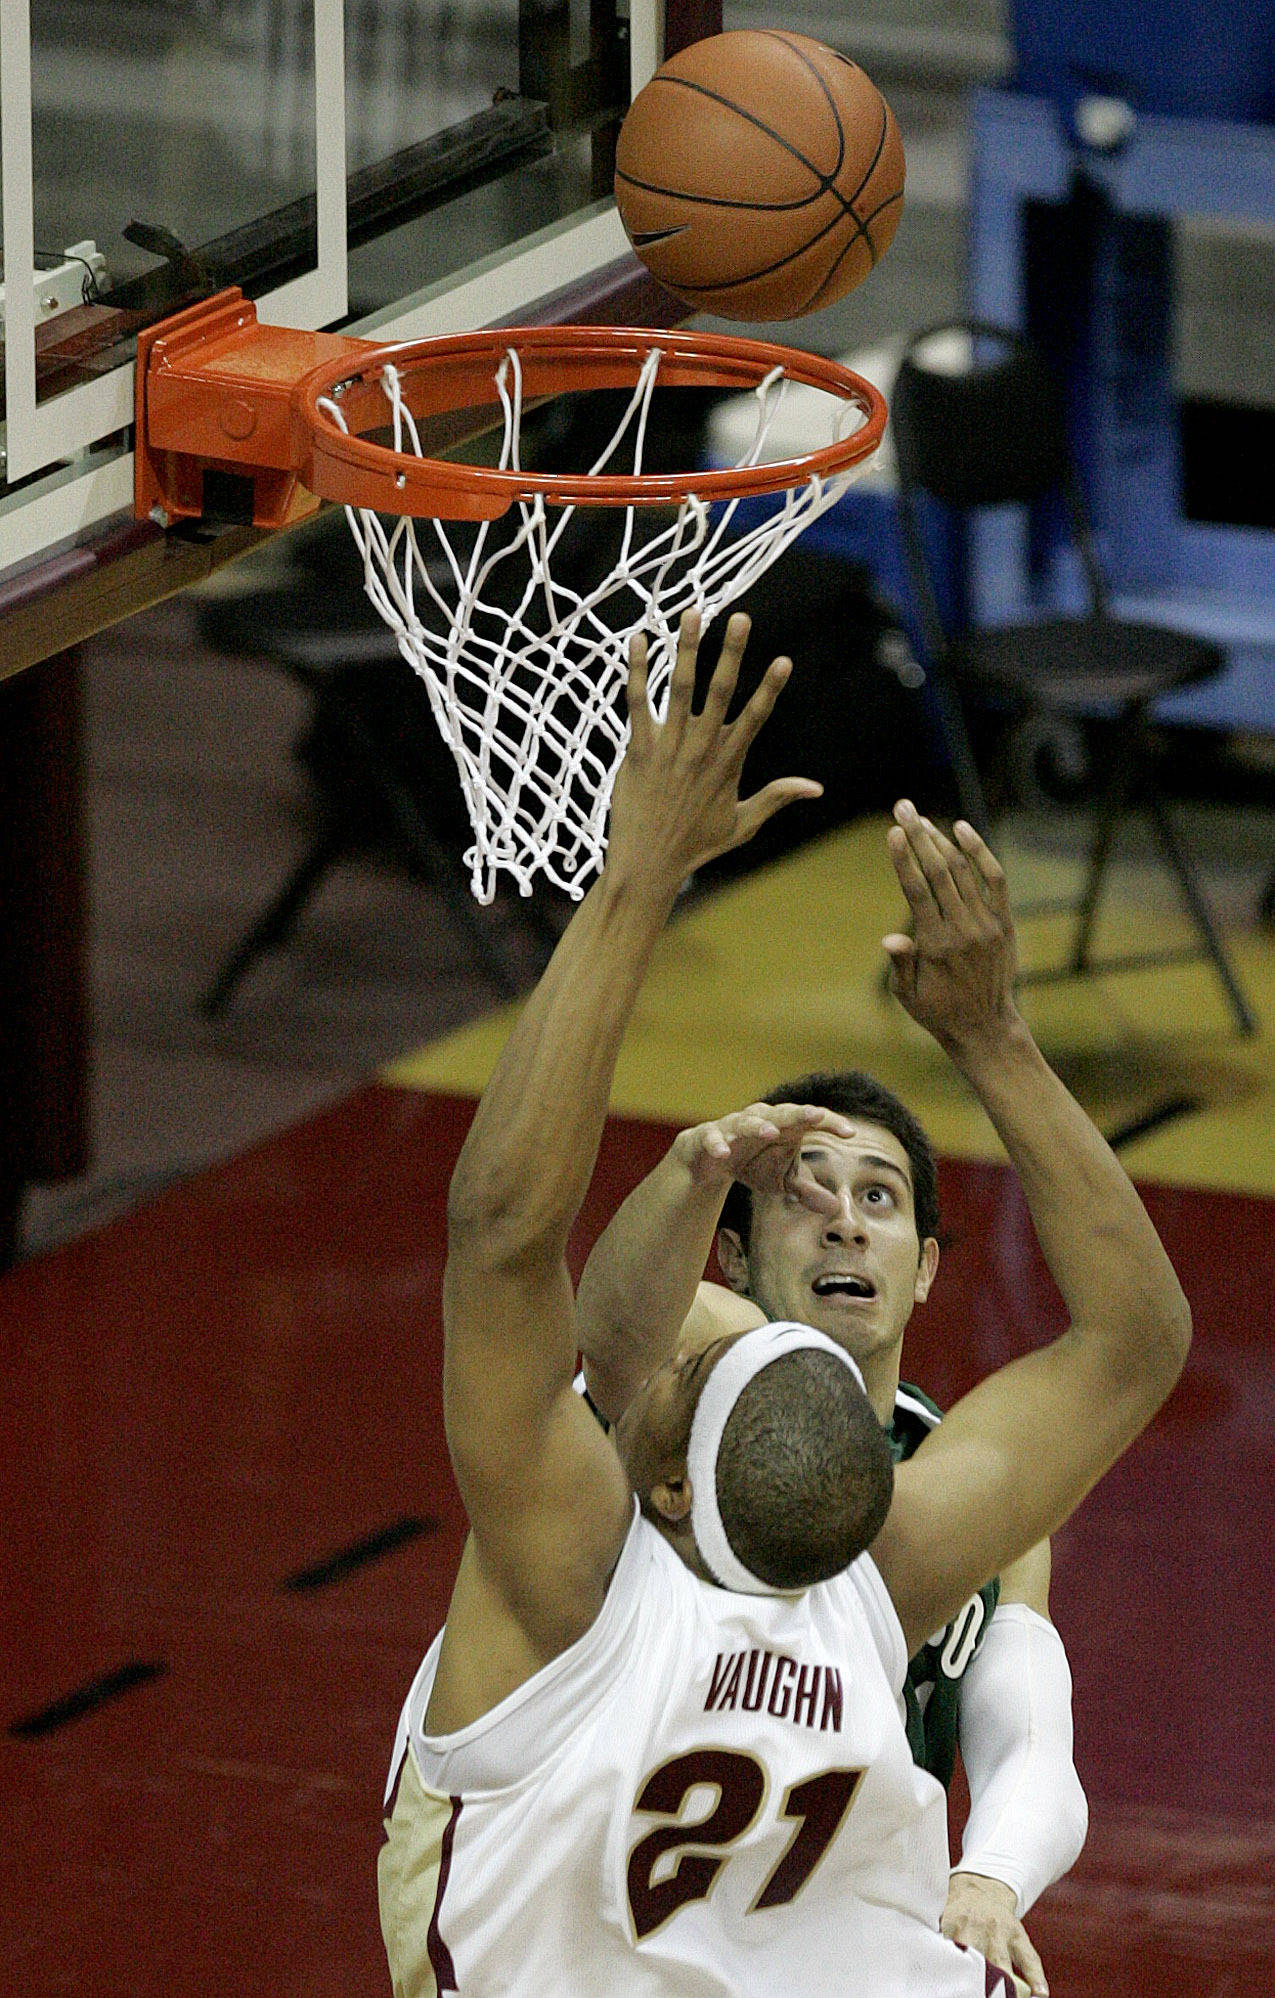 Stetson's Eric Diaz tries to stop Florida State's Julian Vaughn as he drives to the basket in the first half of a college basketball game on Friday Nov. 30, 2007 in Tallahassee, Fla. (AP Photo/Steve Cannon)